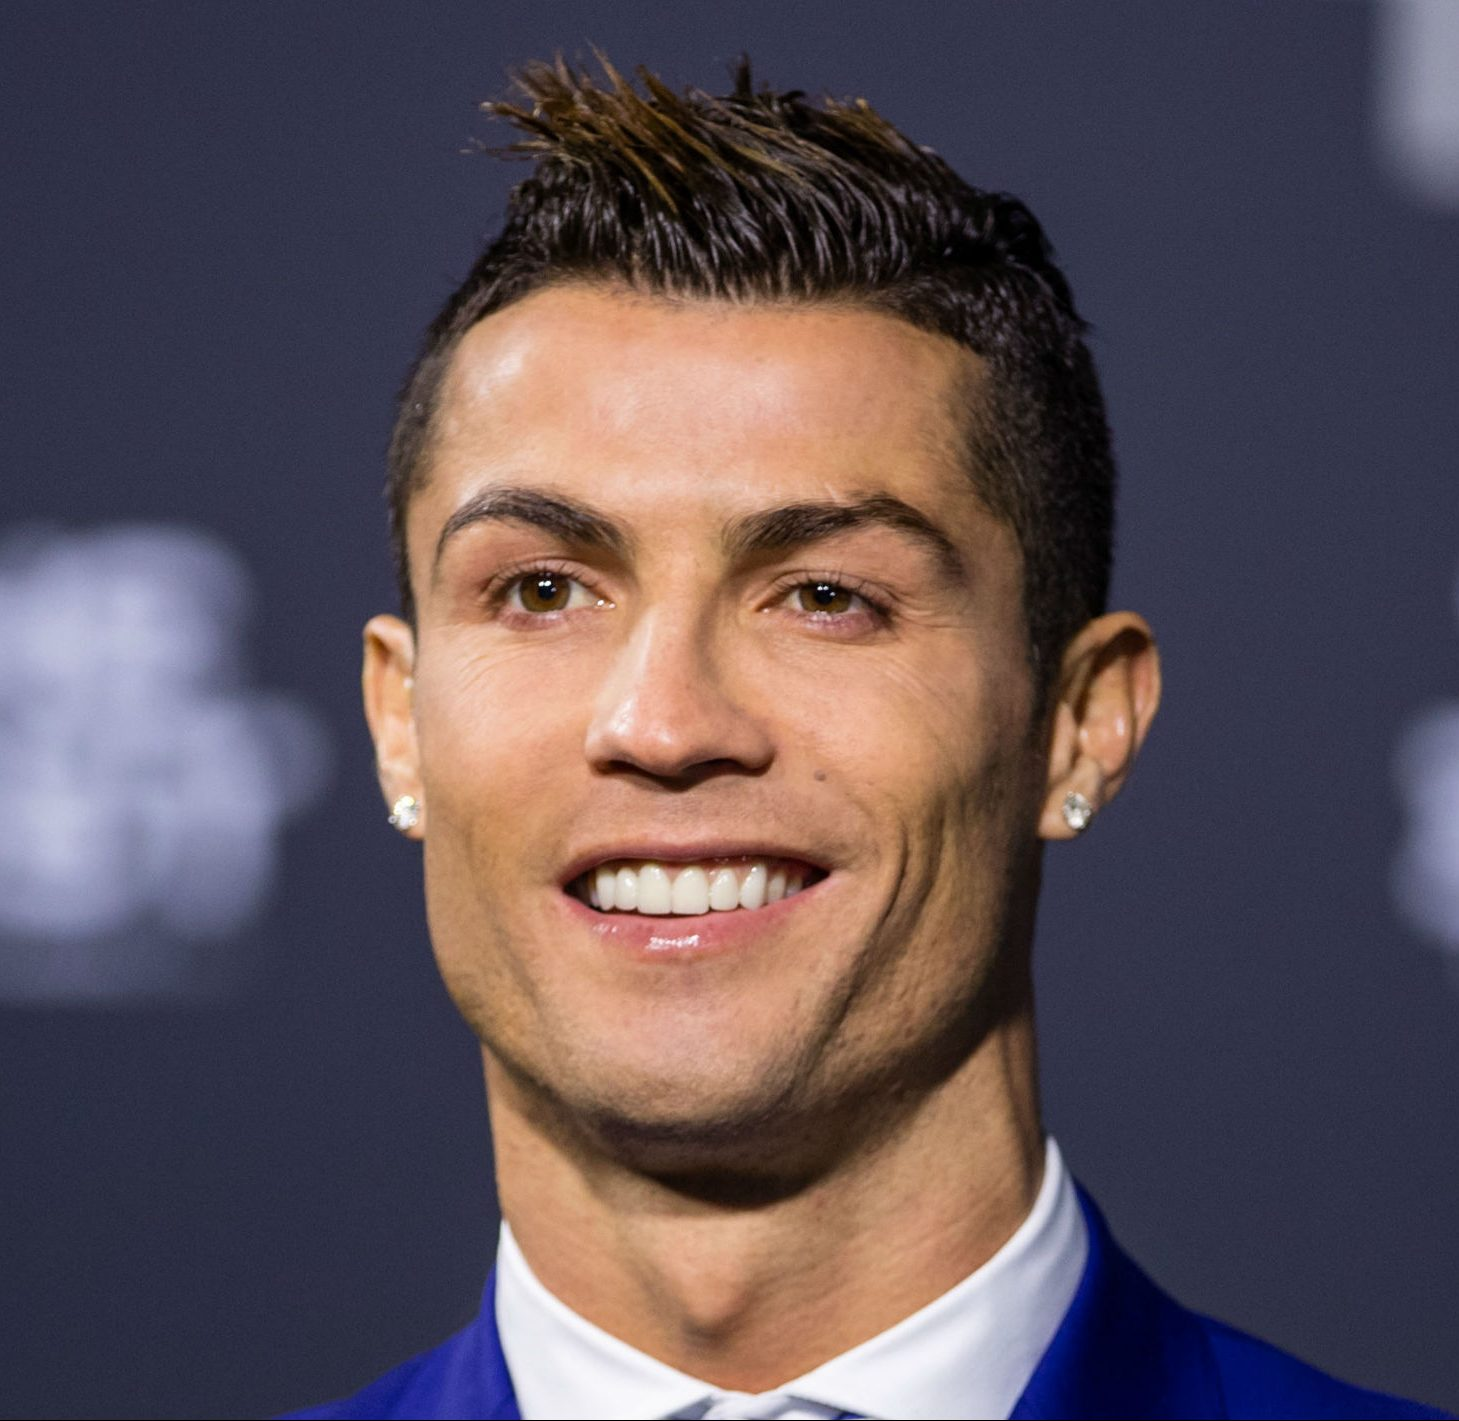 Cristiano Ronaldo Haircut Men's Hairstyle Trends